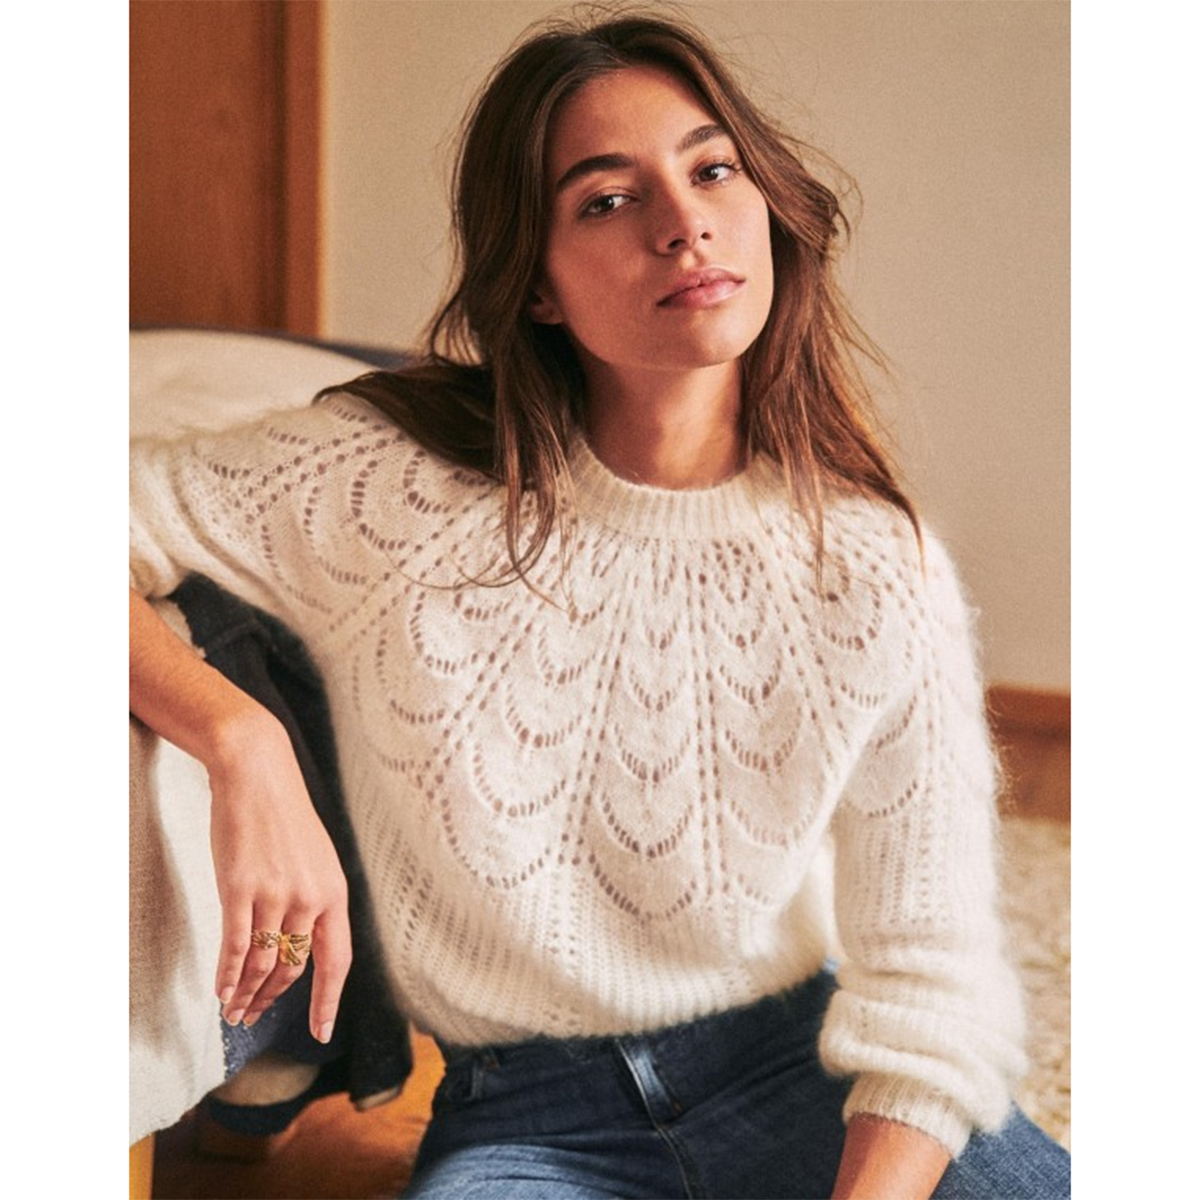 Paulin Knitted Jumper Women Warm Mohair Wool Puffed Sleeve O nenck Chic Sweater 2020 Autumn Winter Vintage Pullover(China)